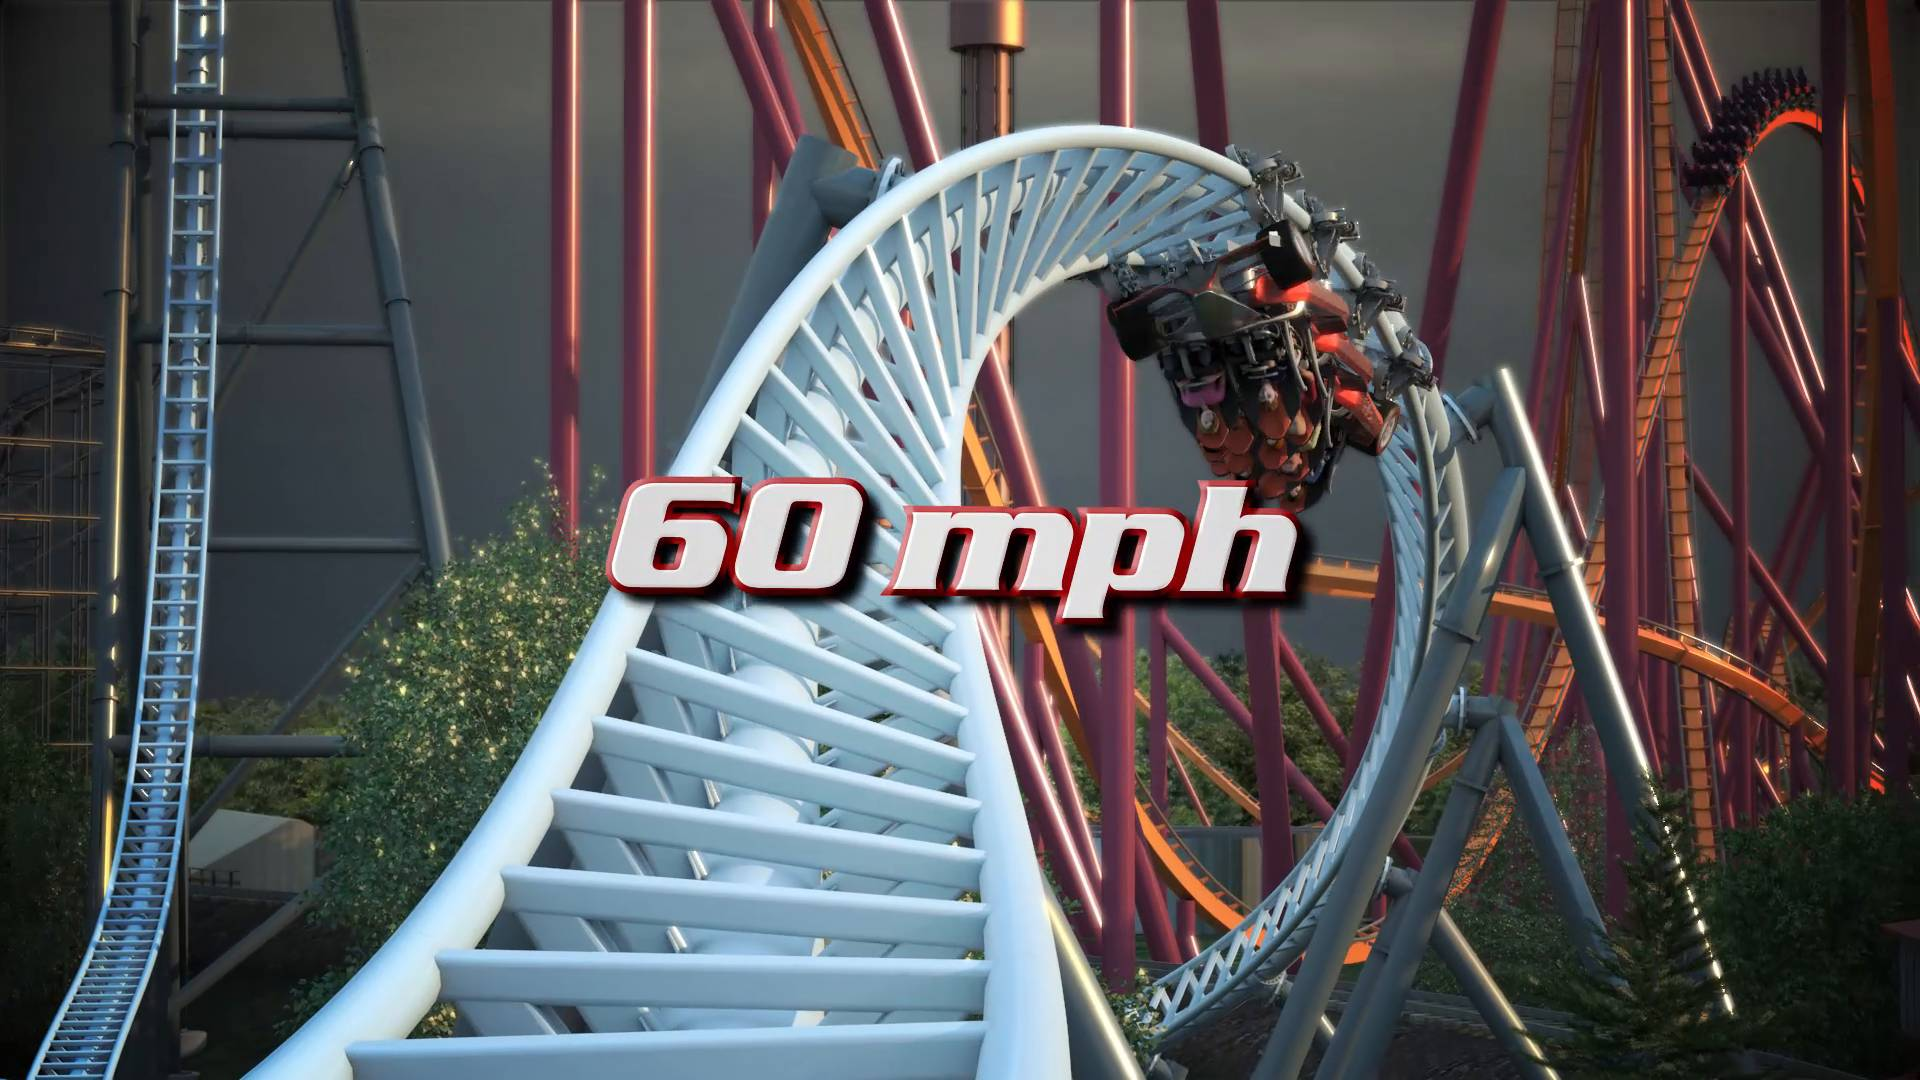 New roller coaster in Illinois to reach 78 mph in 2 seconds | KUTV